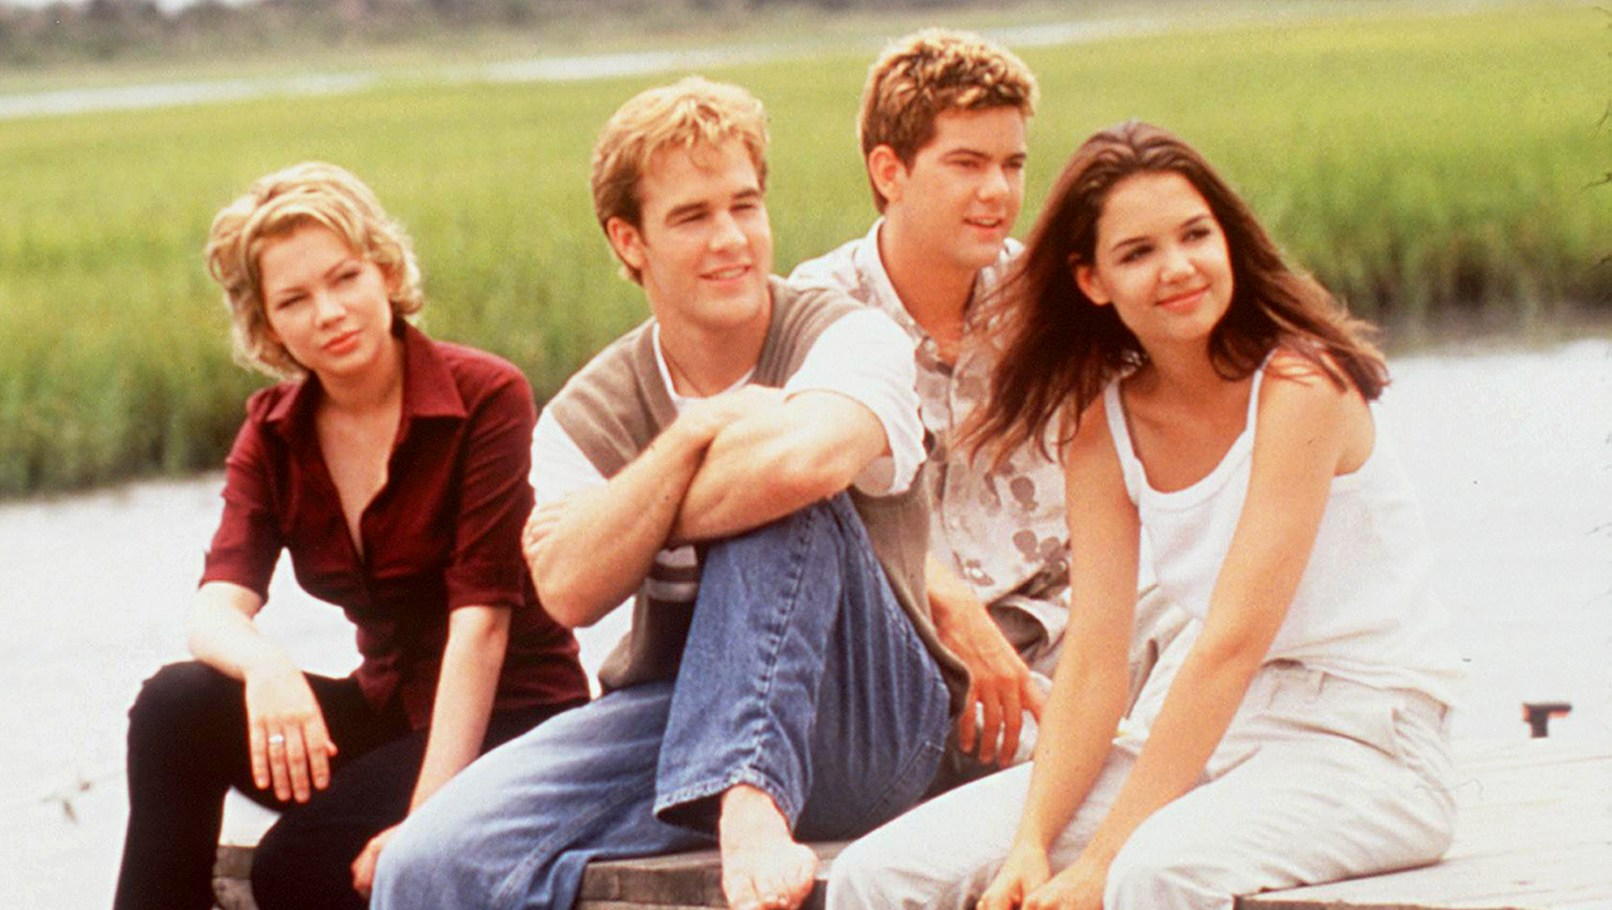 'Dawson's Creek' stars Michelle Williams, James Van Der Beek, Joshua Jackson and Katie Holmes